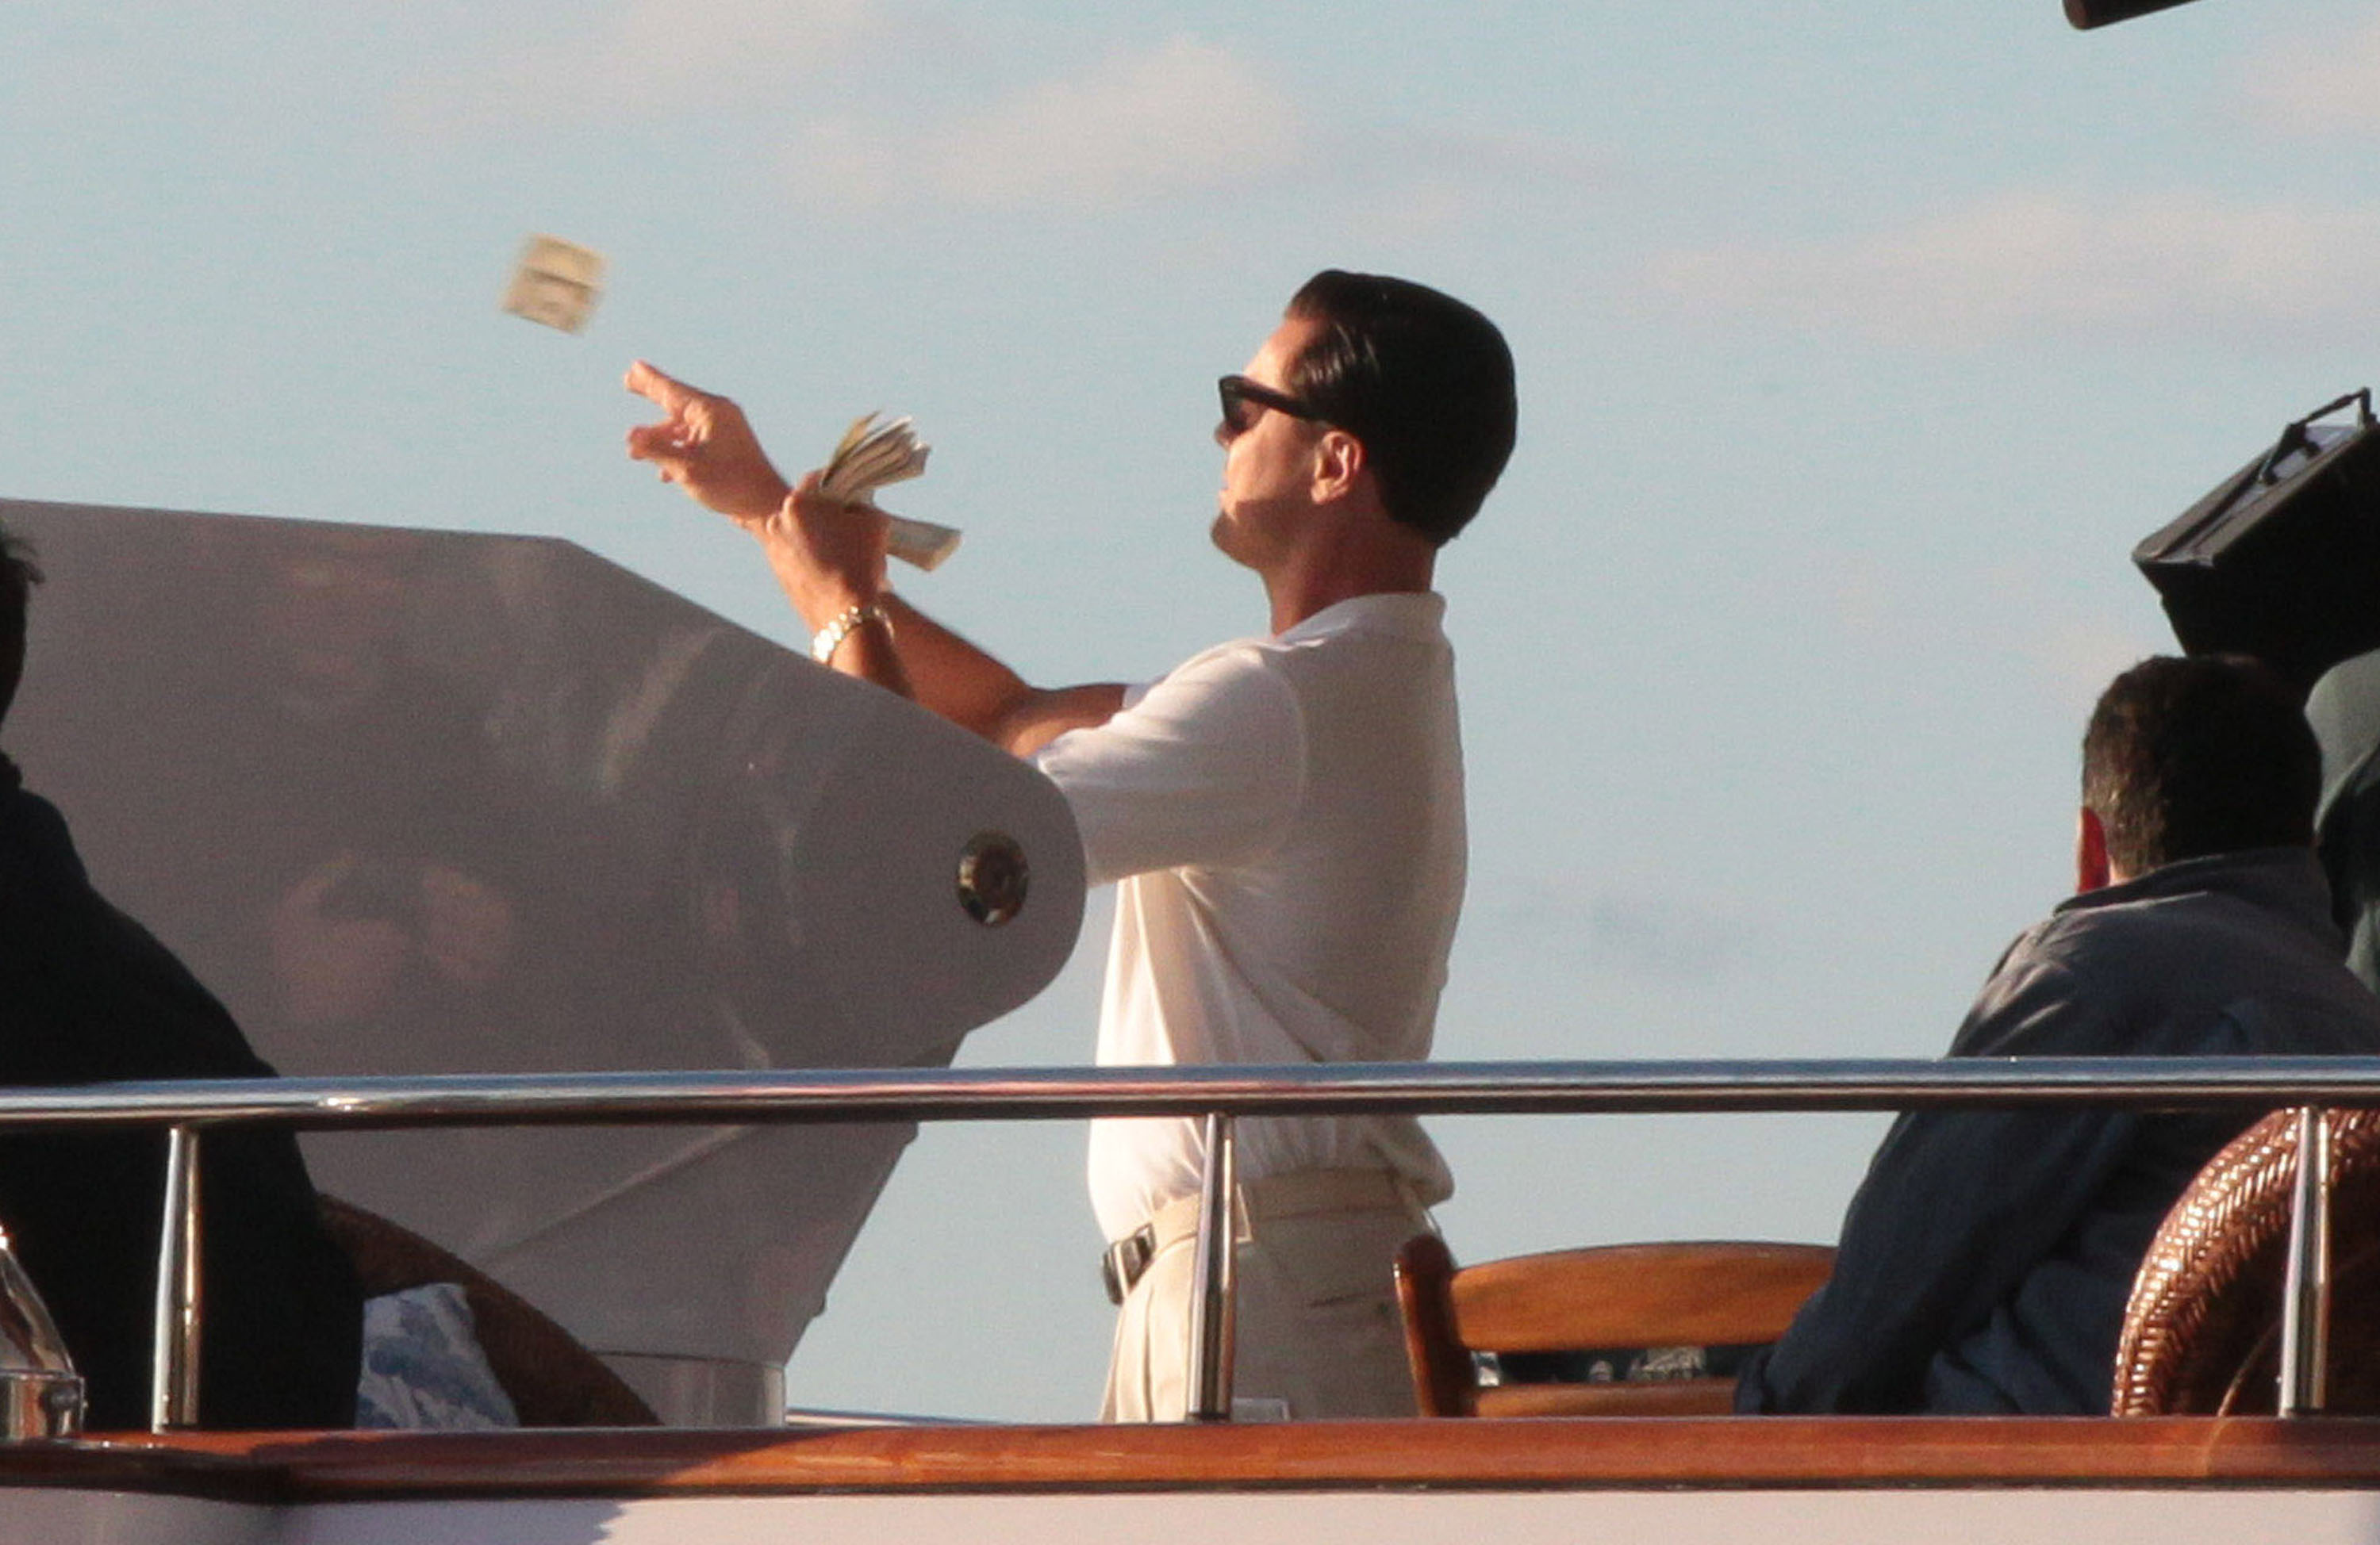 Leonardo DiCaprio Lets Loose on a Yacht For a Wild Day of Filming